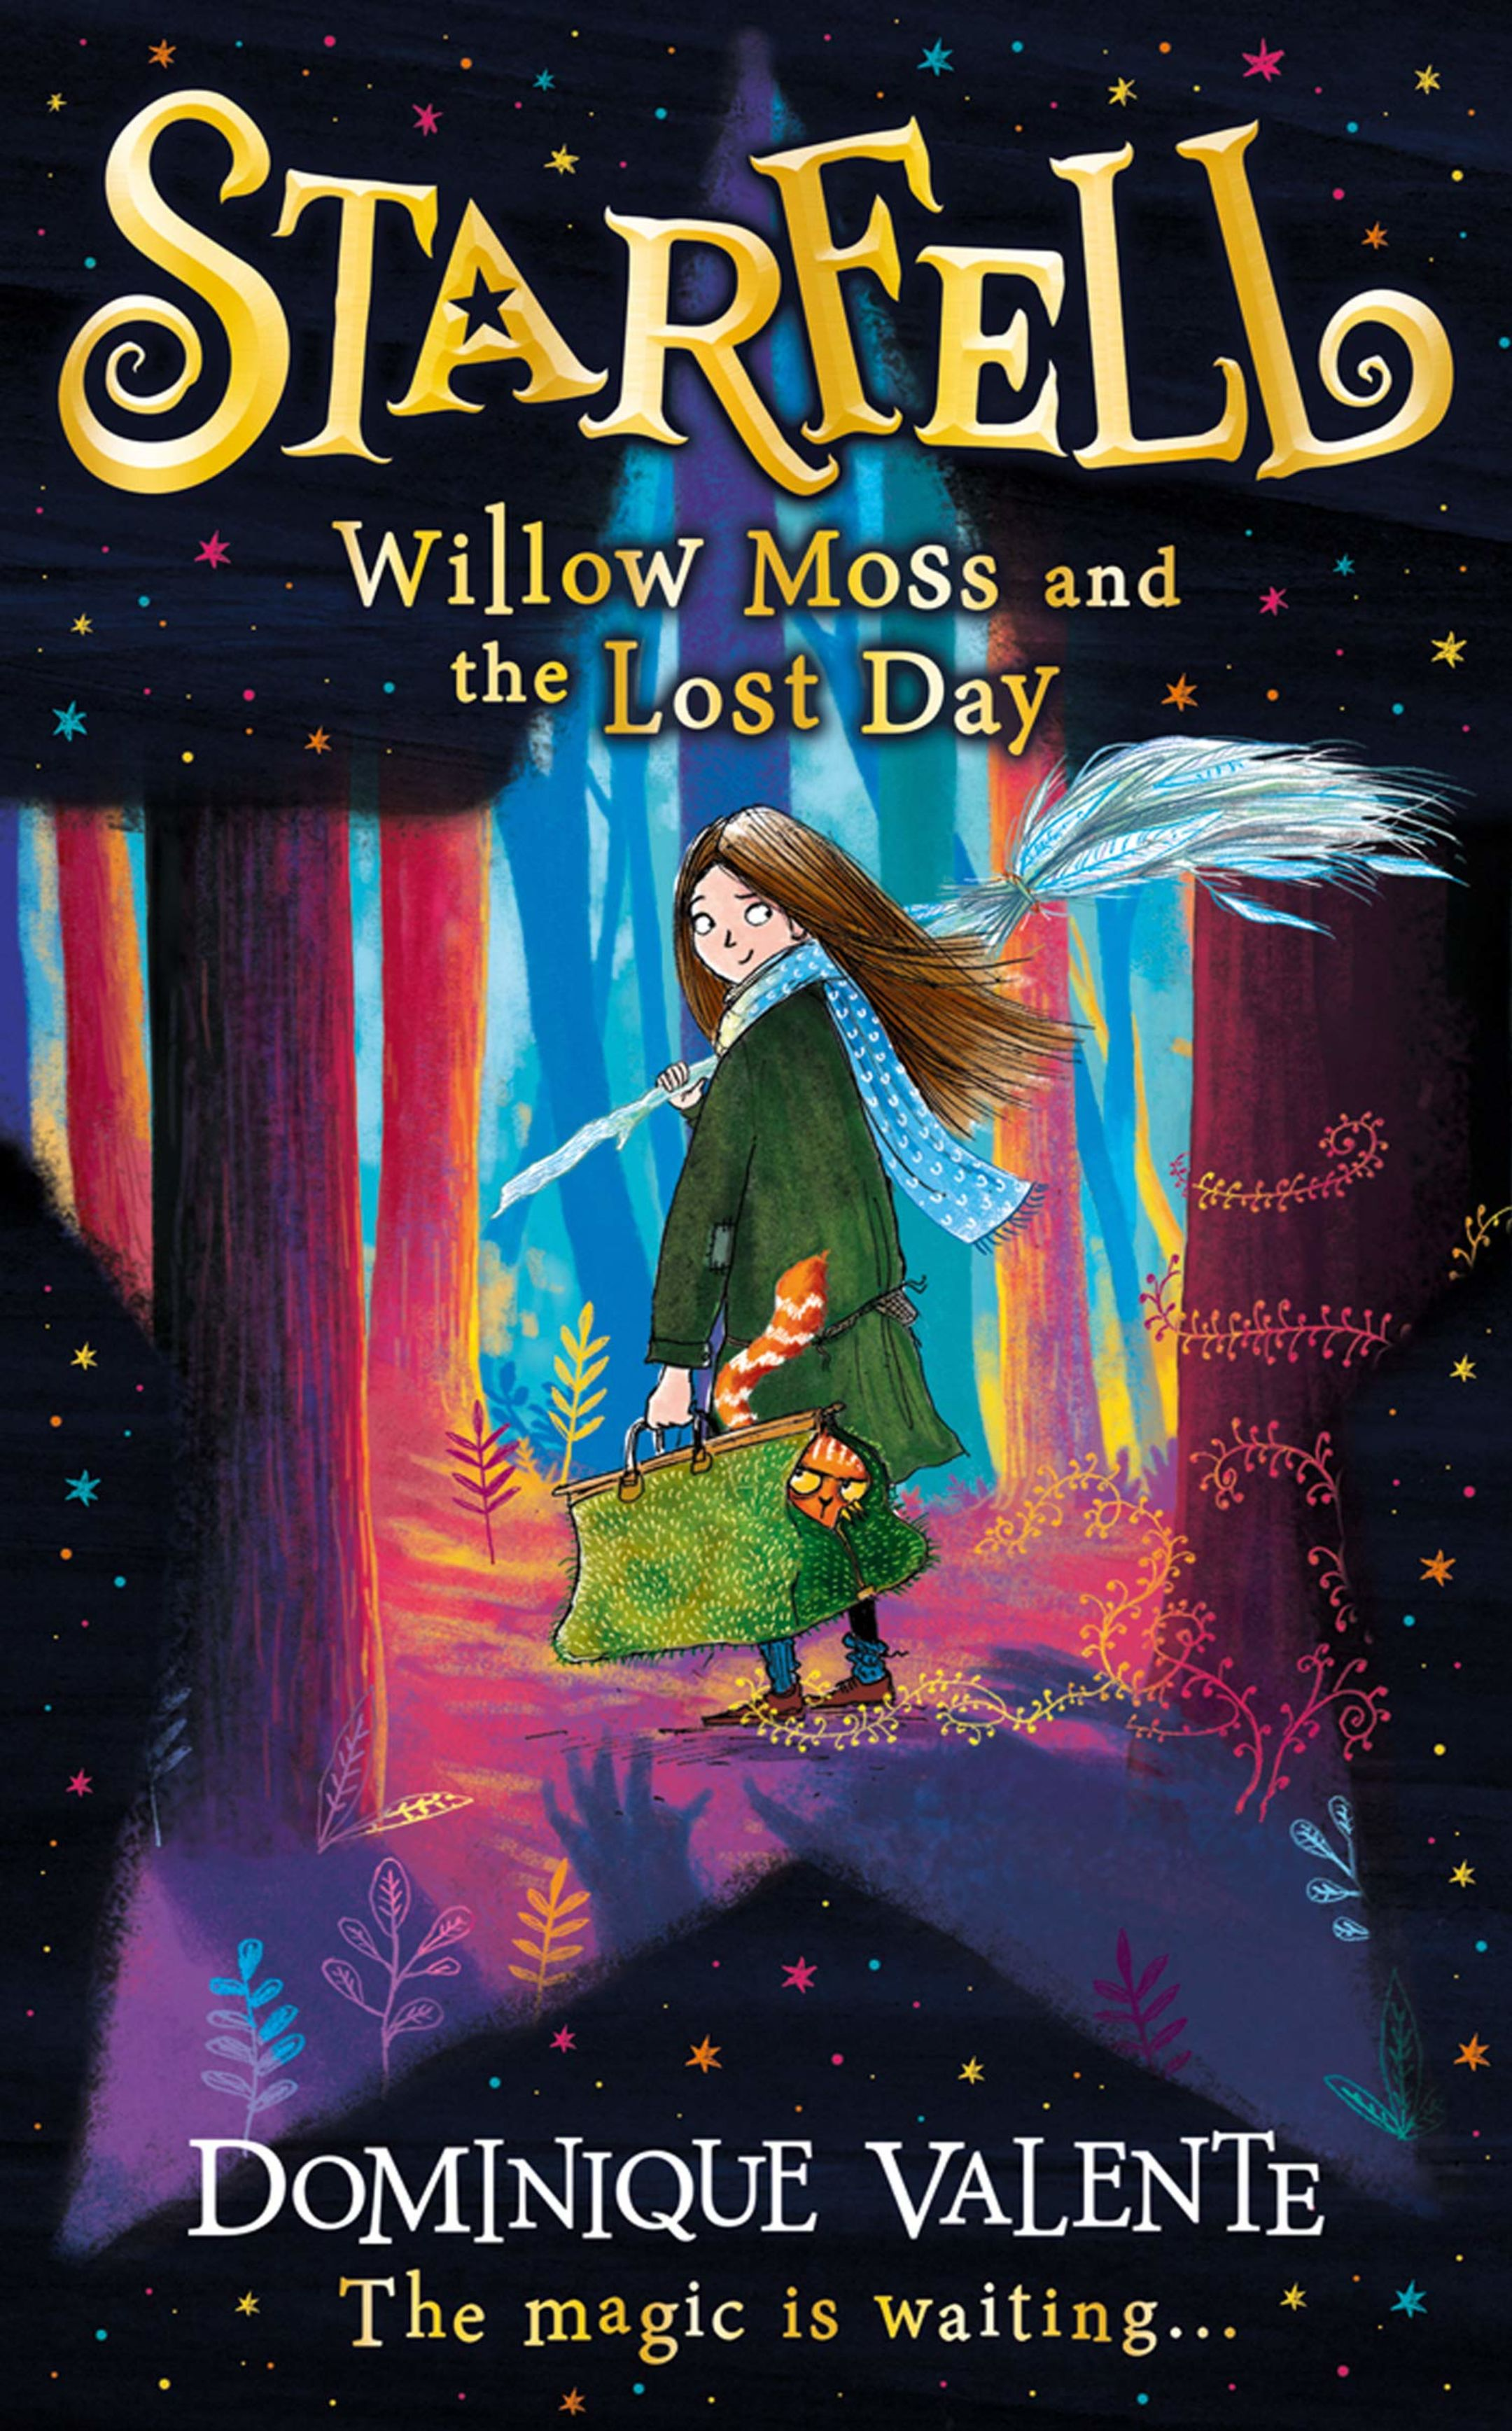 The book cover of Starfell: Willow Moss and the Lost Day, by Dominique Valente